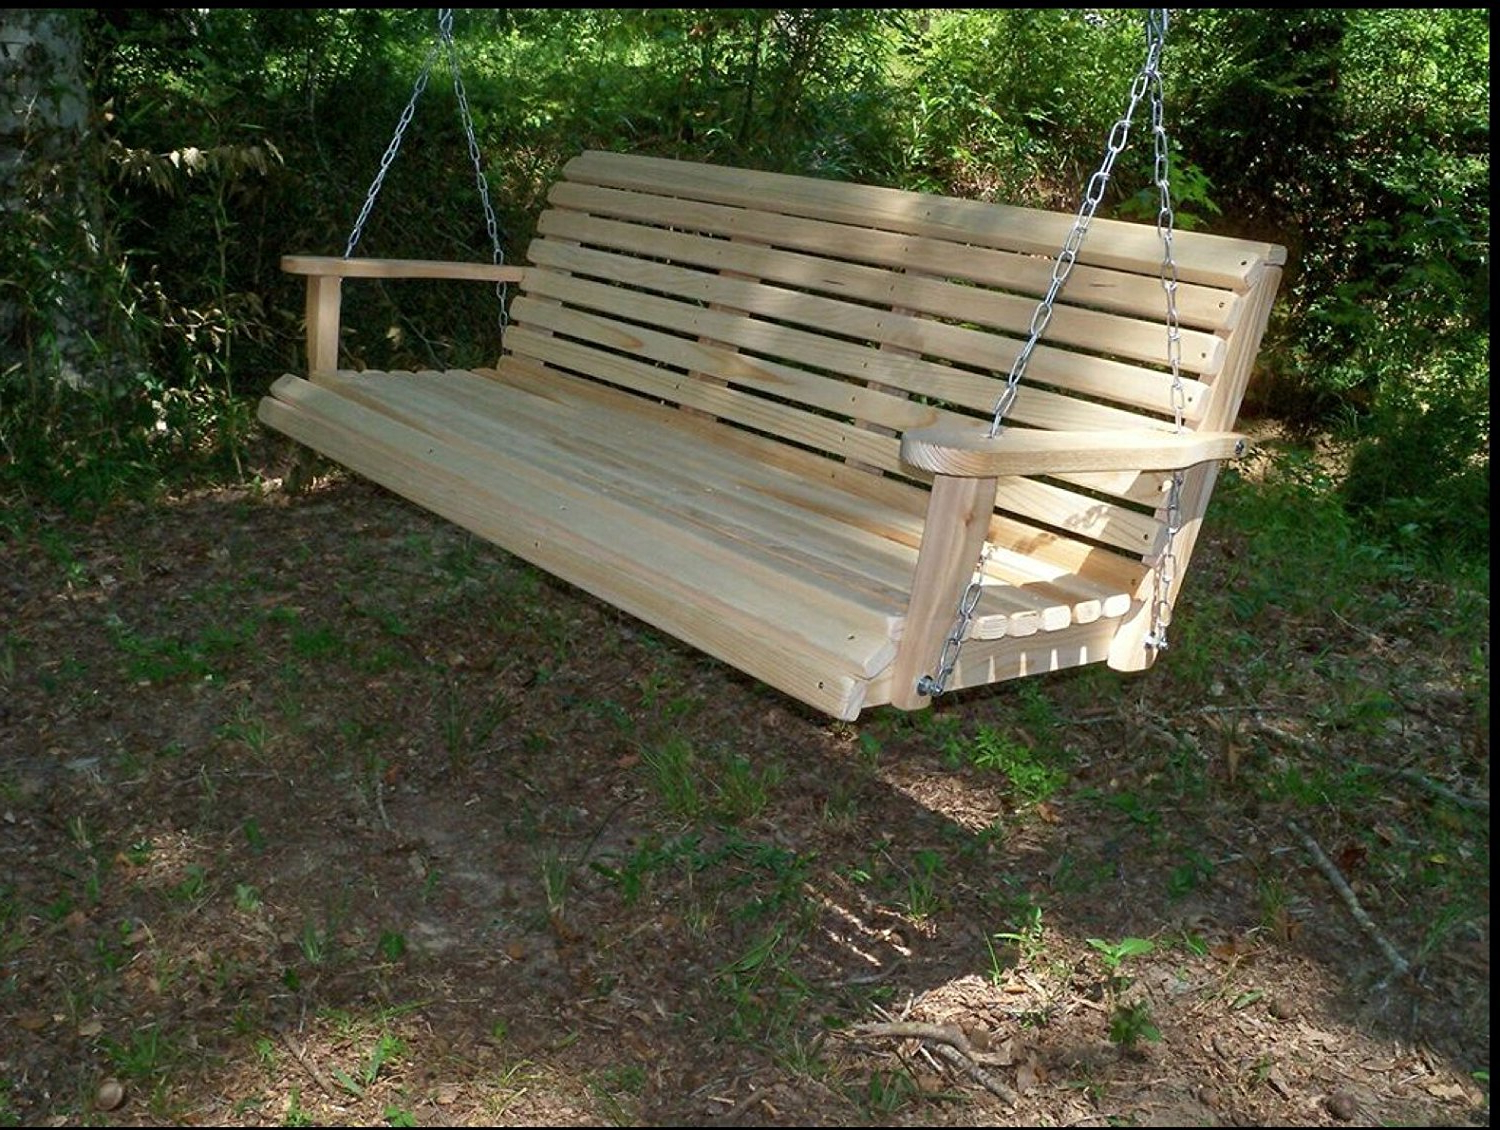 Home Garden Lawn Outdoor Backyard Patio 5 Ft Cypress Lumber Roll Back Porch Swing With Swing Mate Comfort Springs – Walmart Within 2019 5 Ft Cedar Swings With Springs (View 6 of 25)